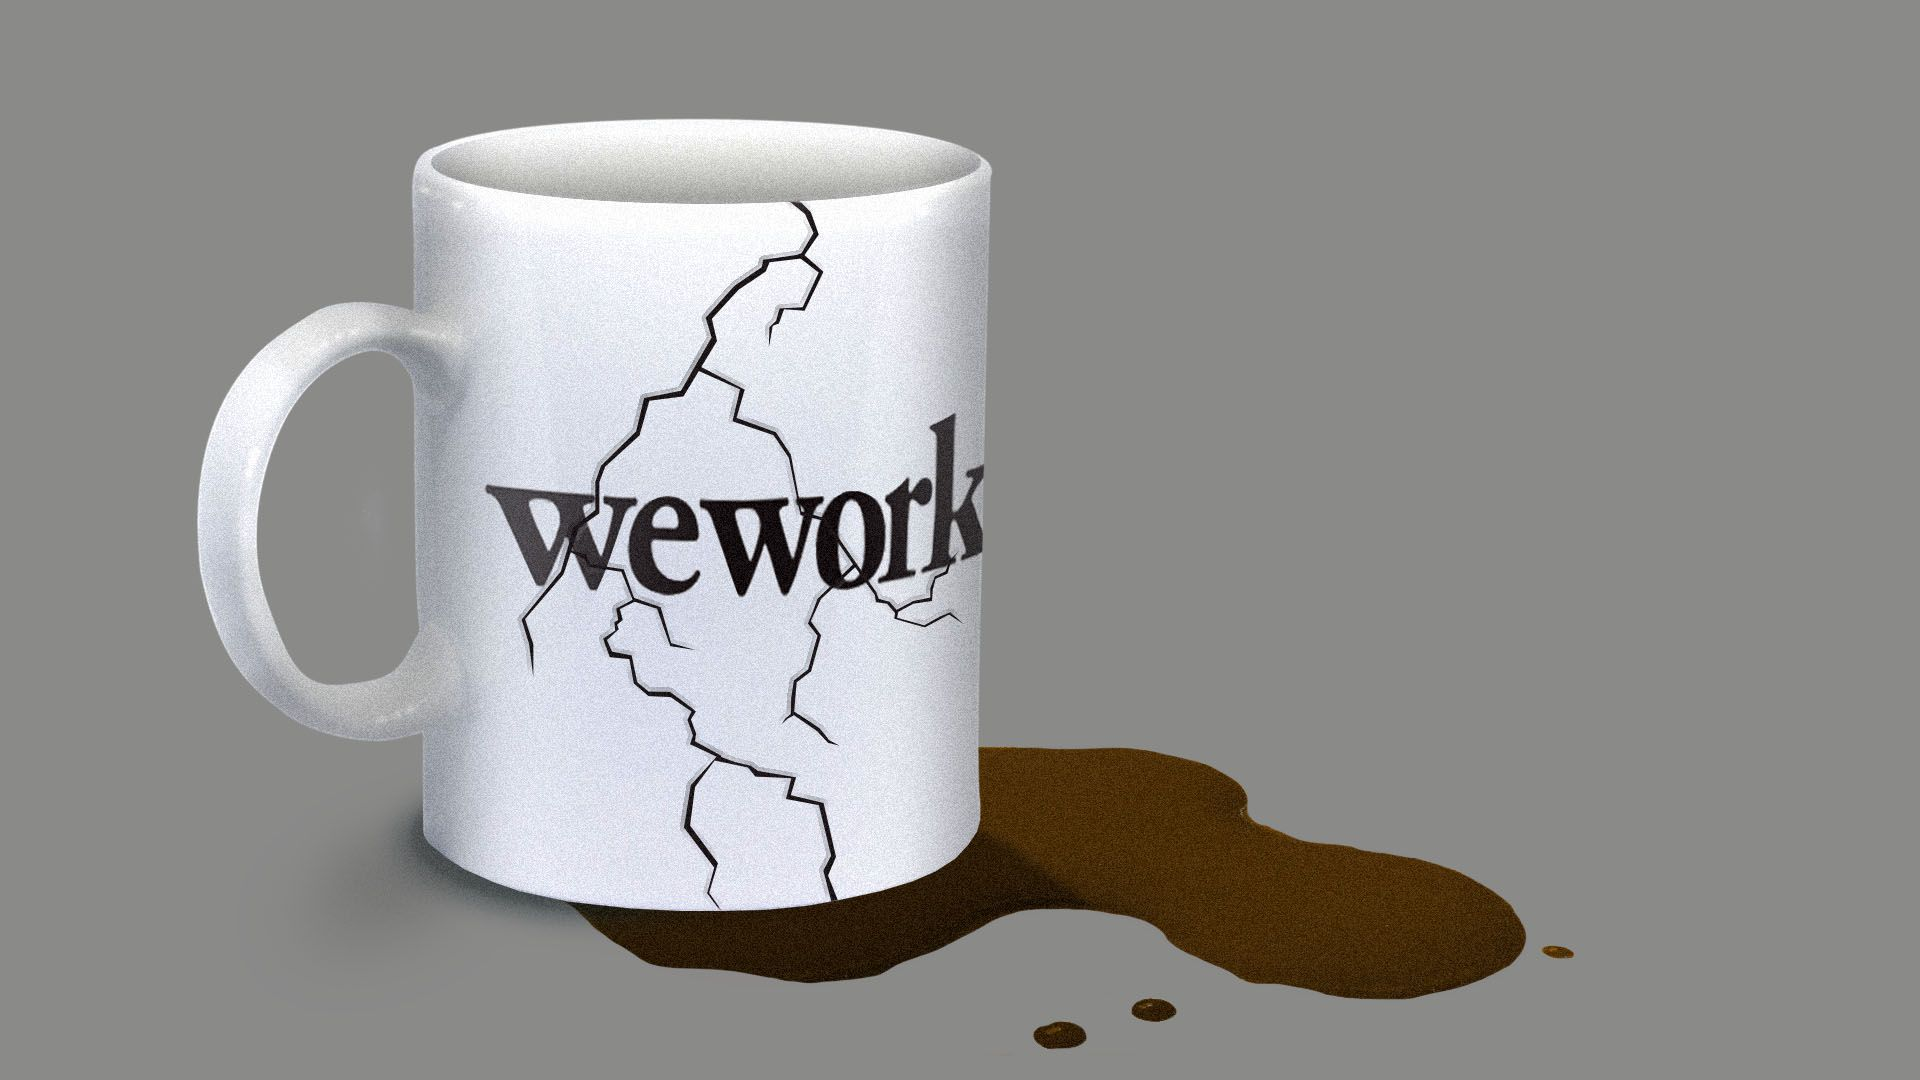 Illustration of a broken coffee mug with a WeWork logo on it.